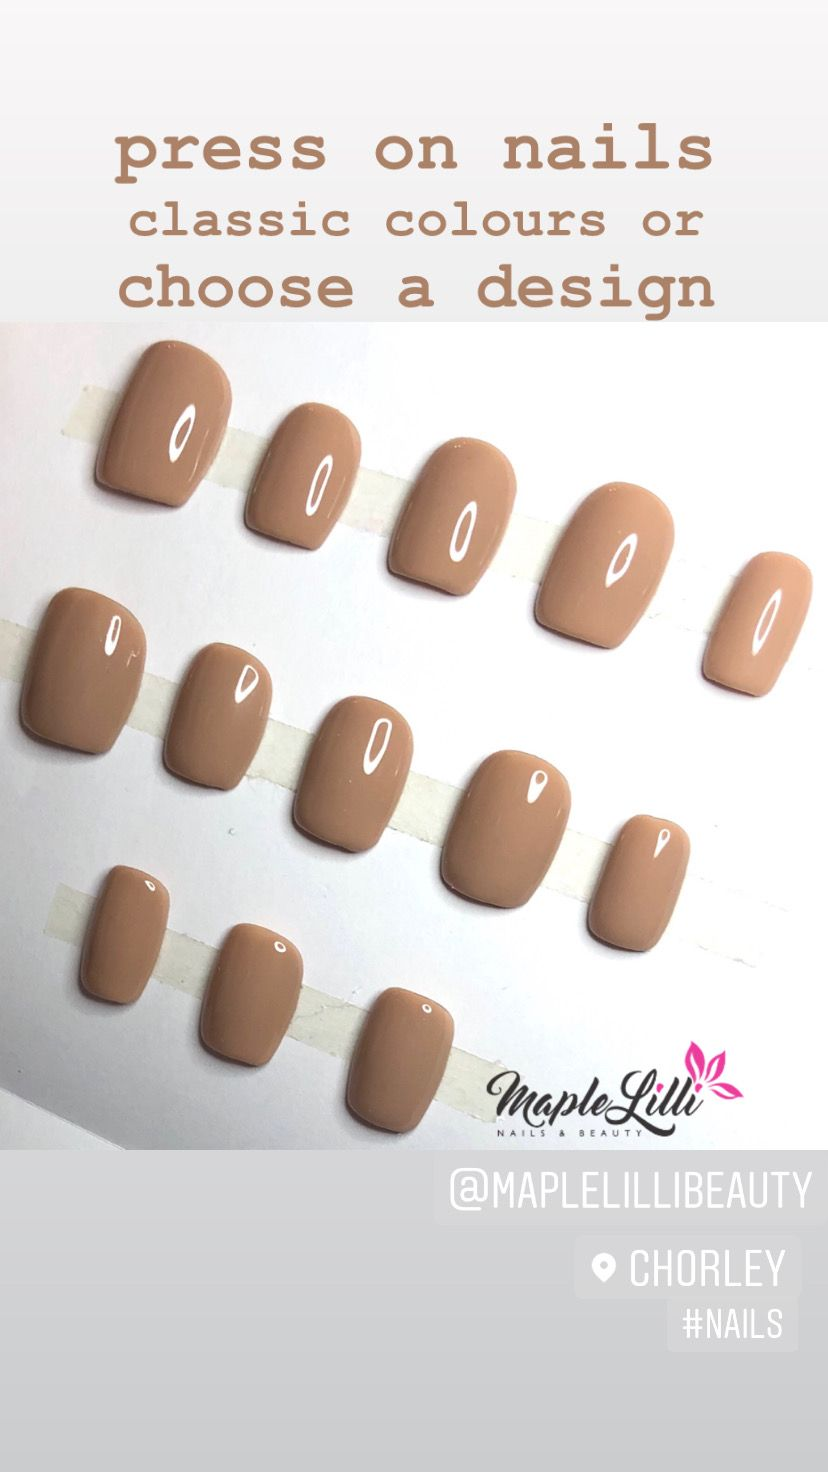 Maple Lilli Nails Beauty In 2020 Nails Popular Nails Press On Nails